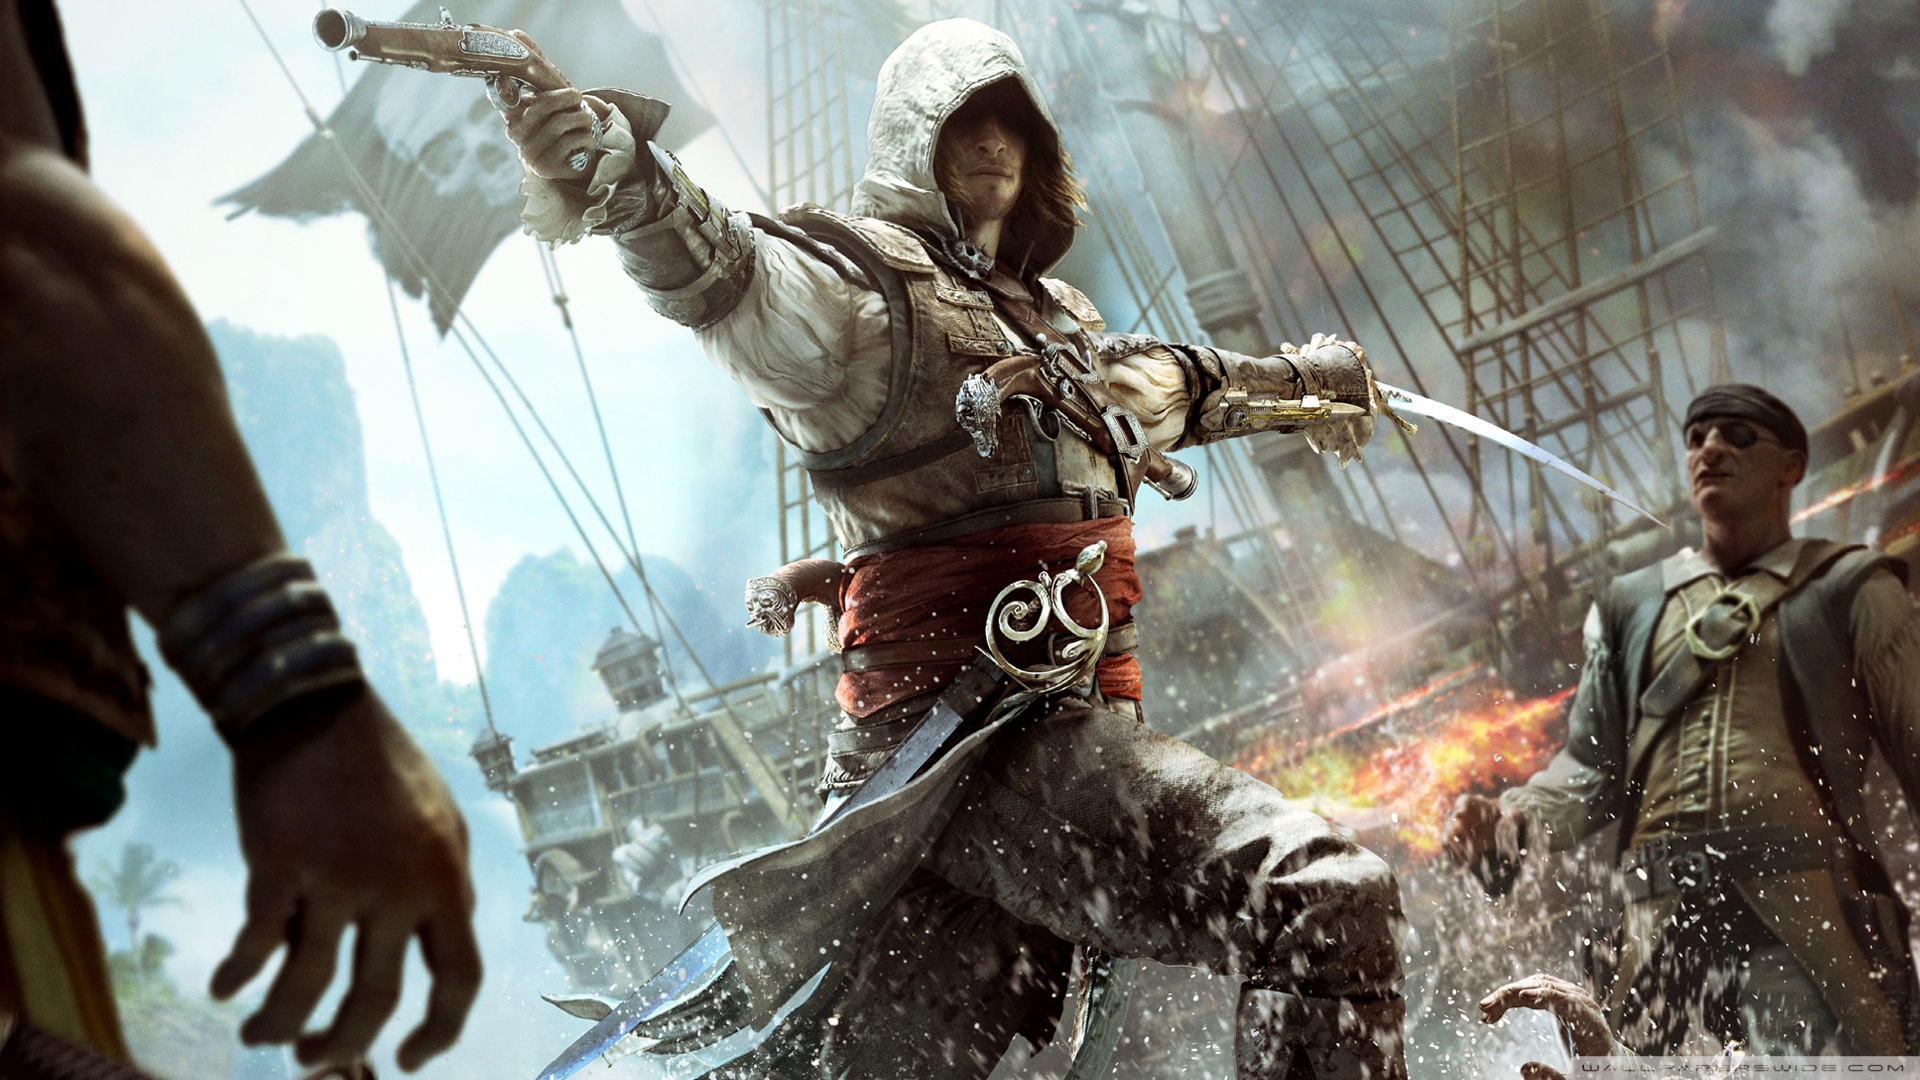 Epic Assassins Creed Wallpaper Posted By John Johnson